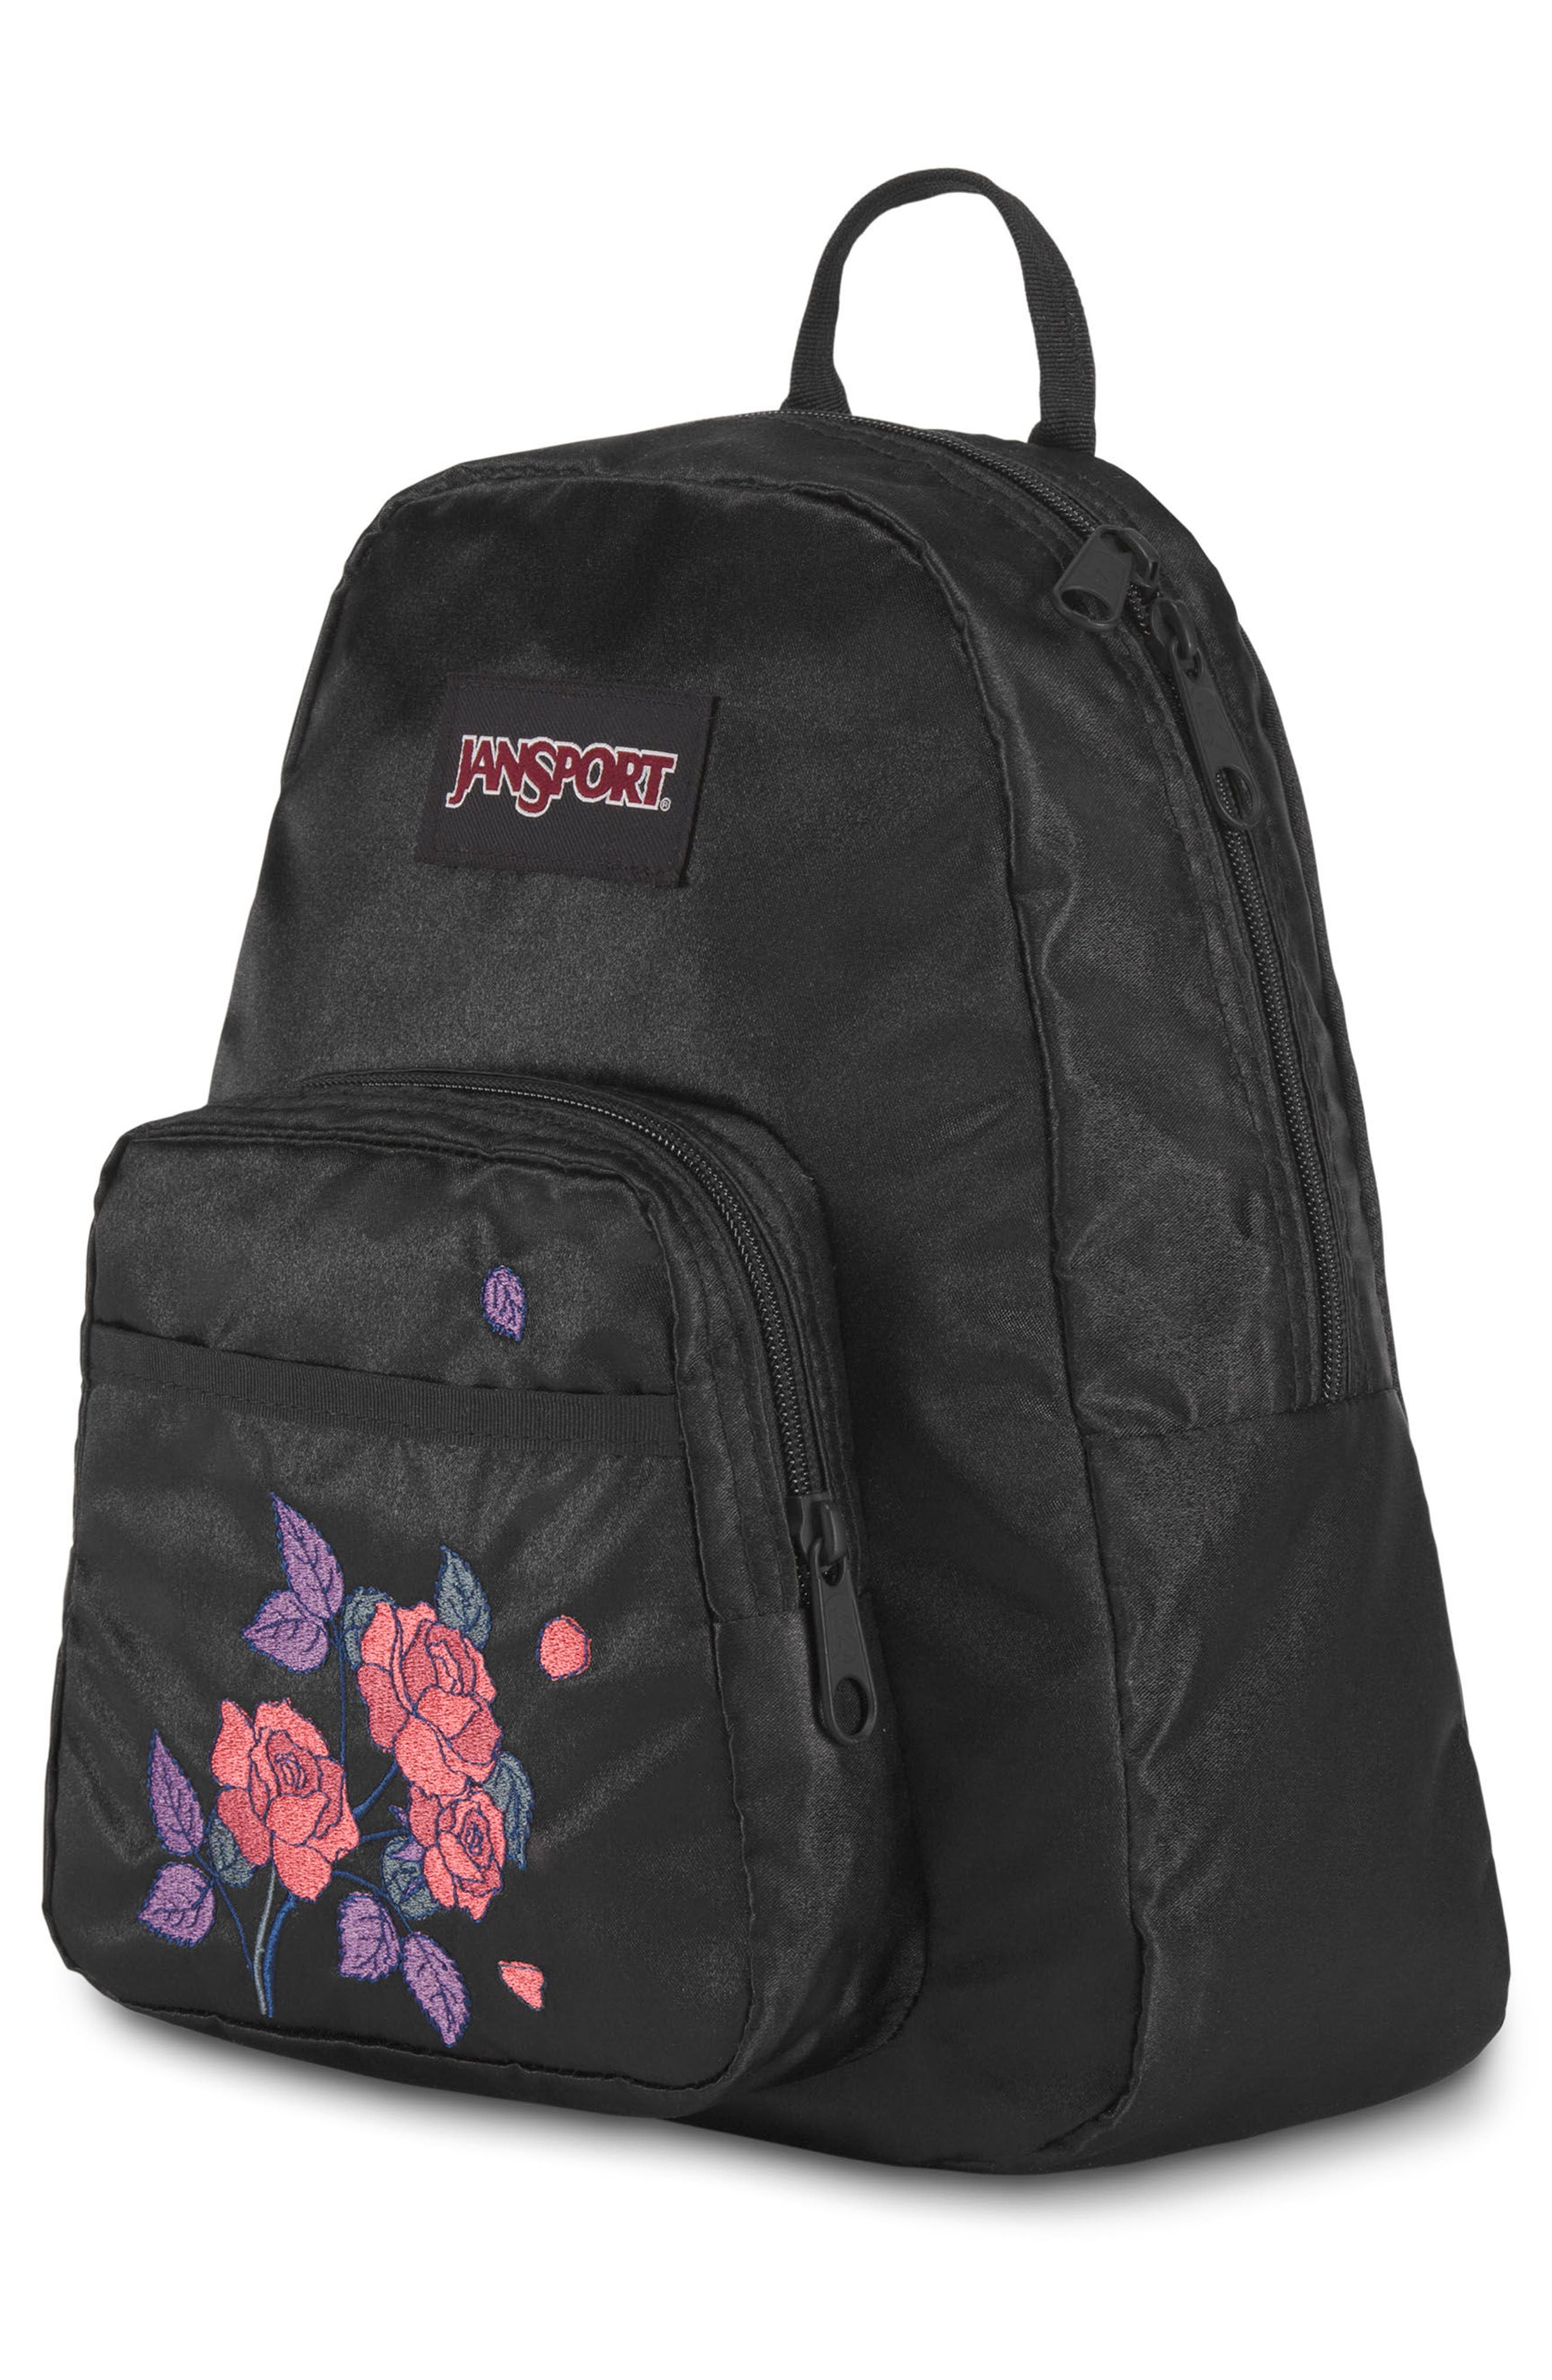 Half Pint FX Backpack,                             Alternate thumbnail 2, color,                             Satin Rose